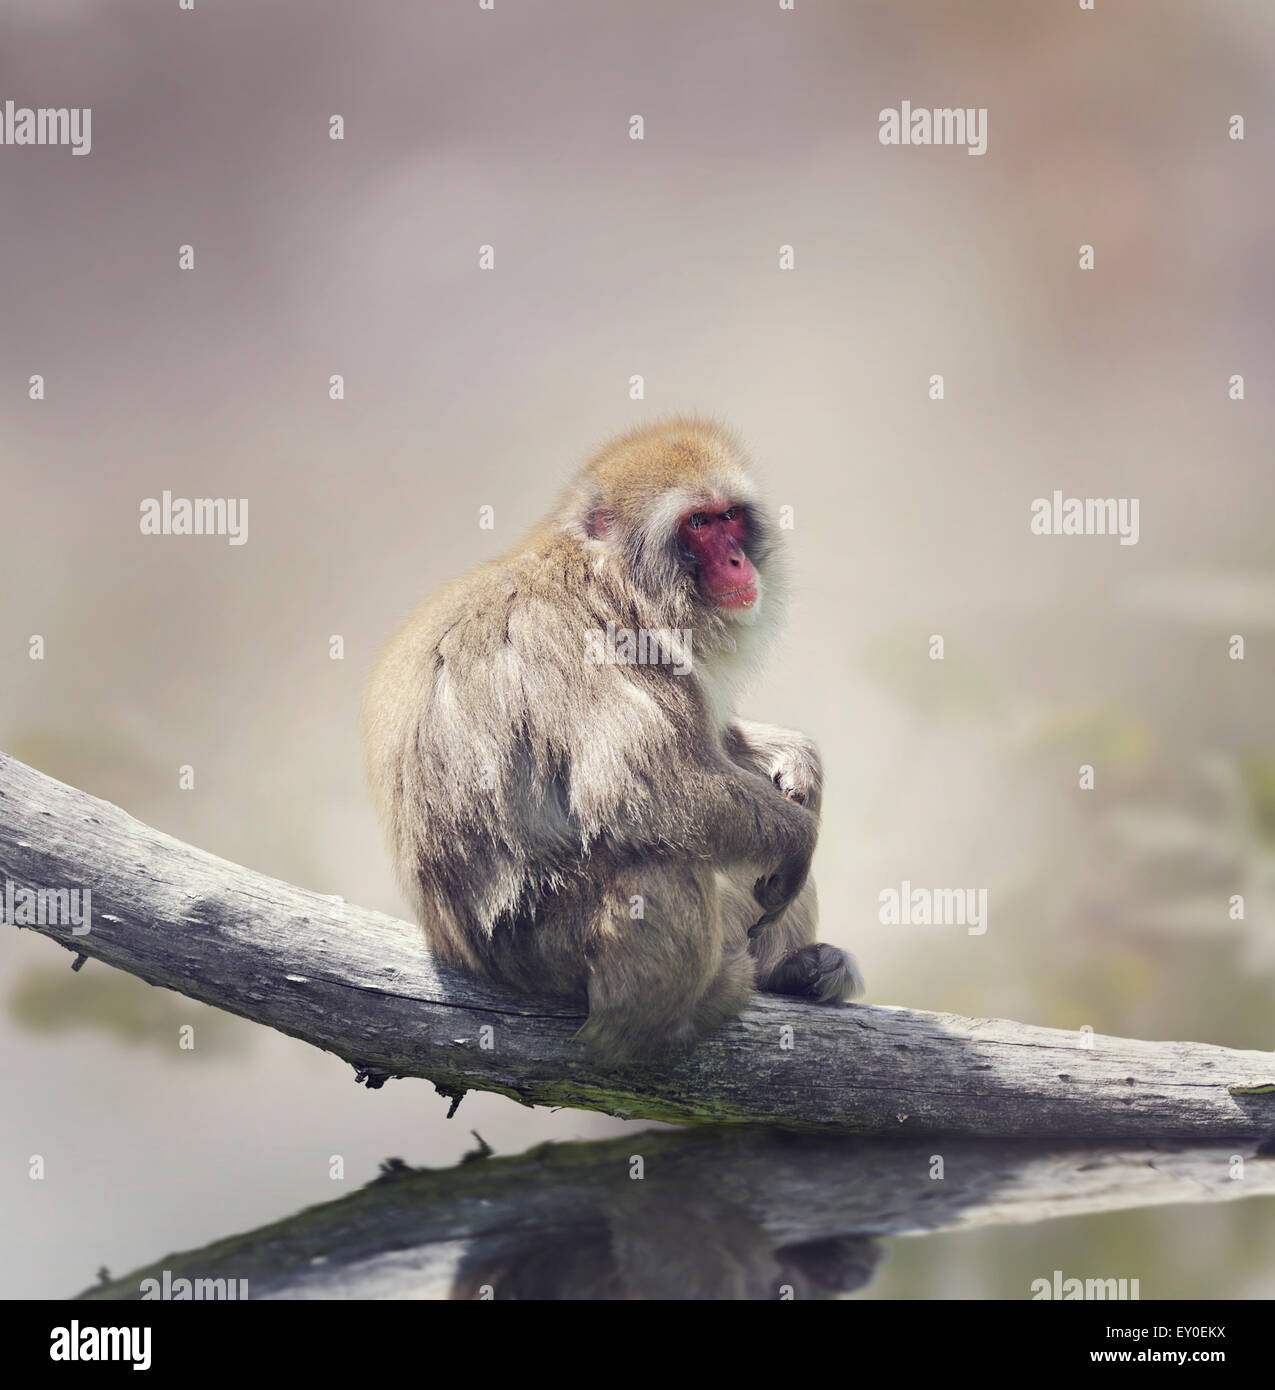 Japanese Macaque On A Log - Stock Image